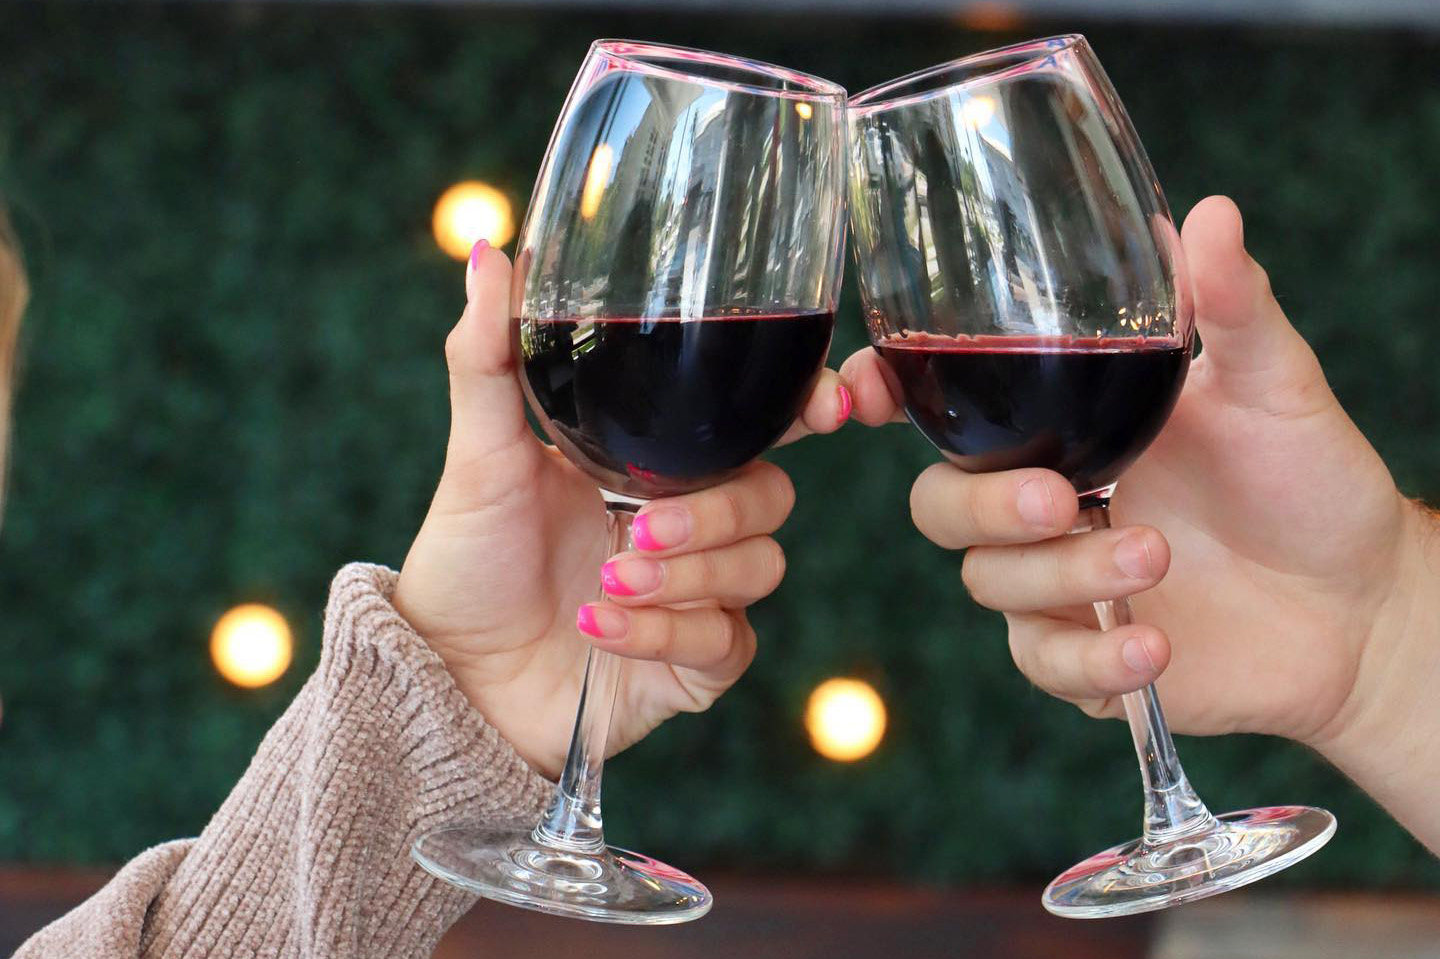 Best Tampa Bay Wine Bars for Date Night